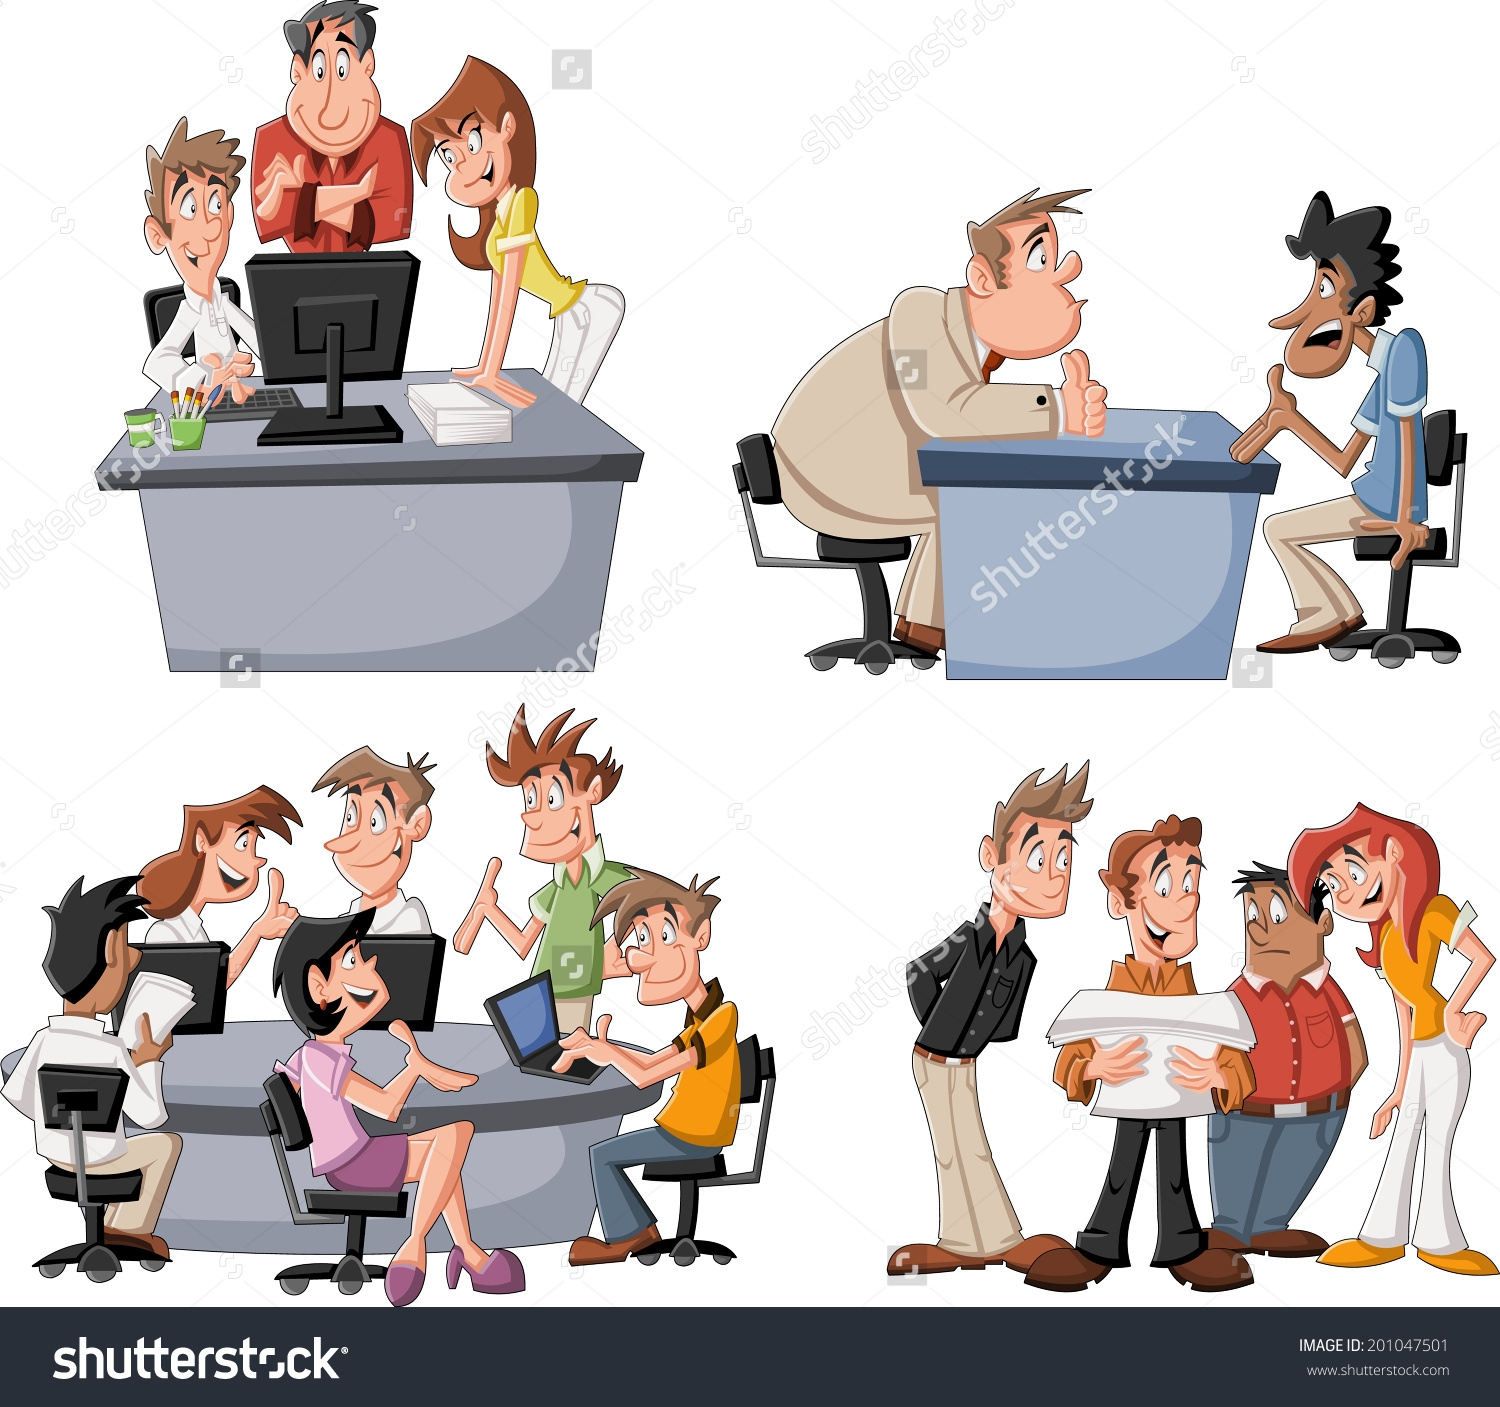 Working people clipart 20 free Cliparts | Download images ...